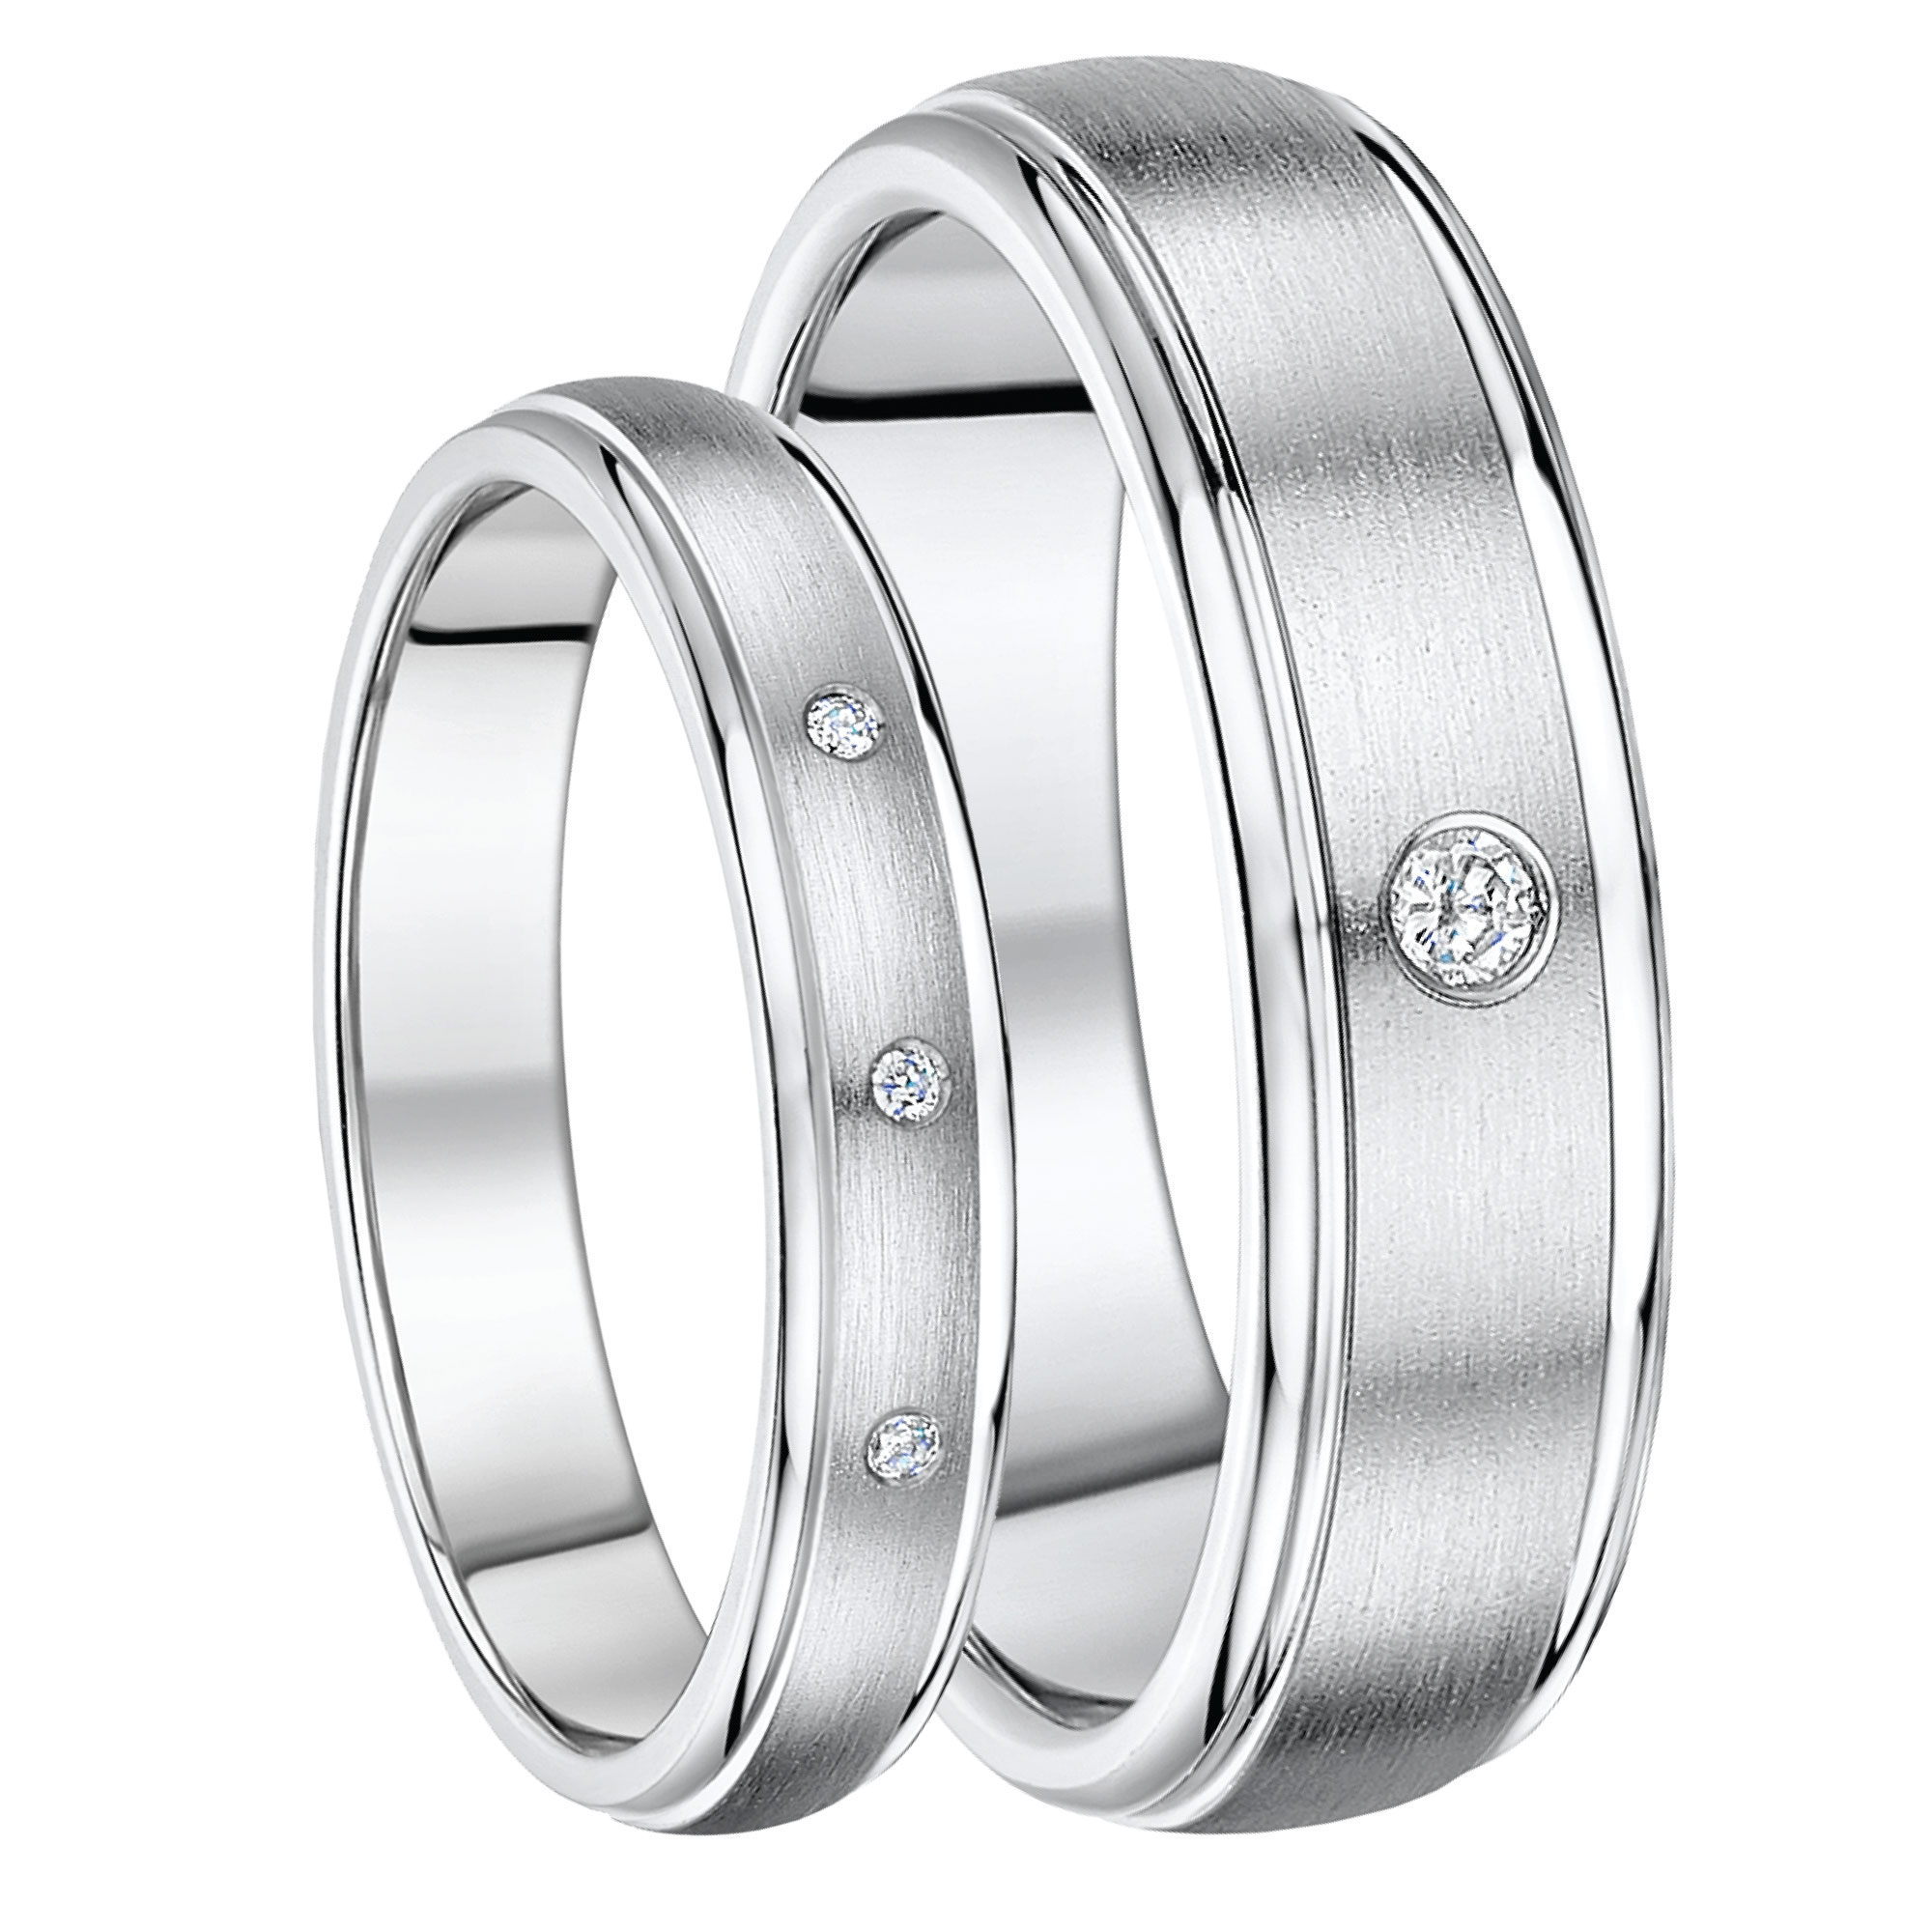 ring finish titanium serenity dp band com amazon prayer fit wedding domed jewelry brushed sizes comfort rings